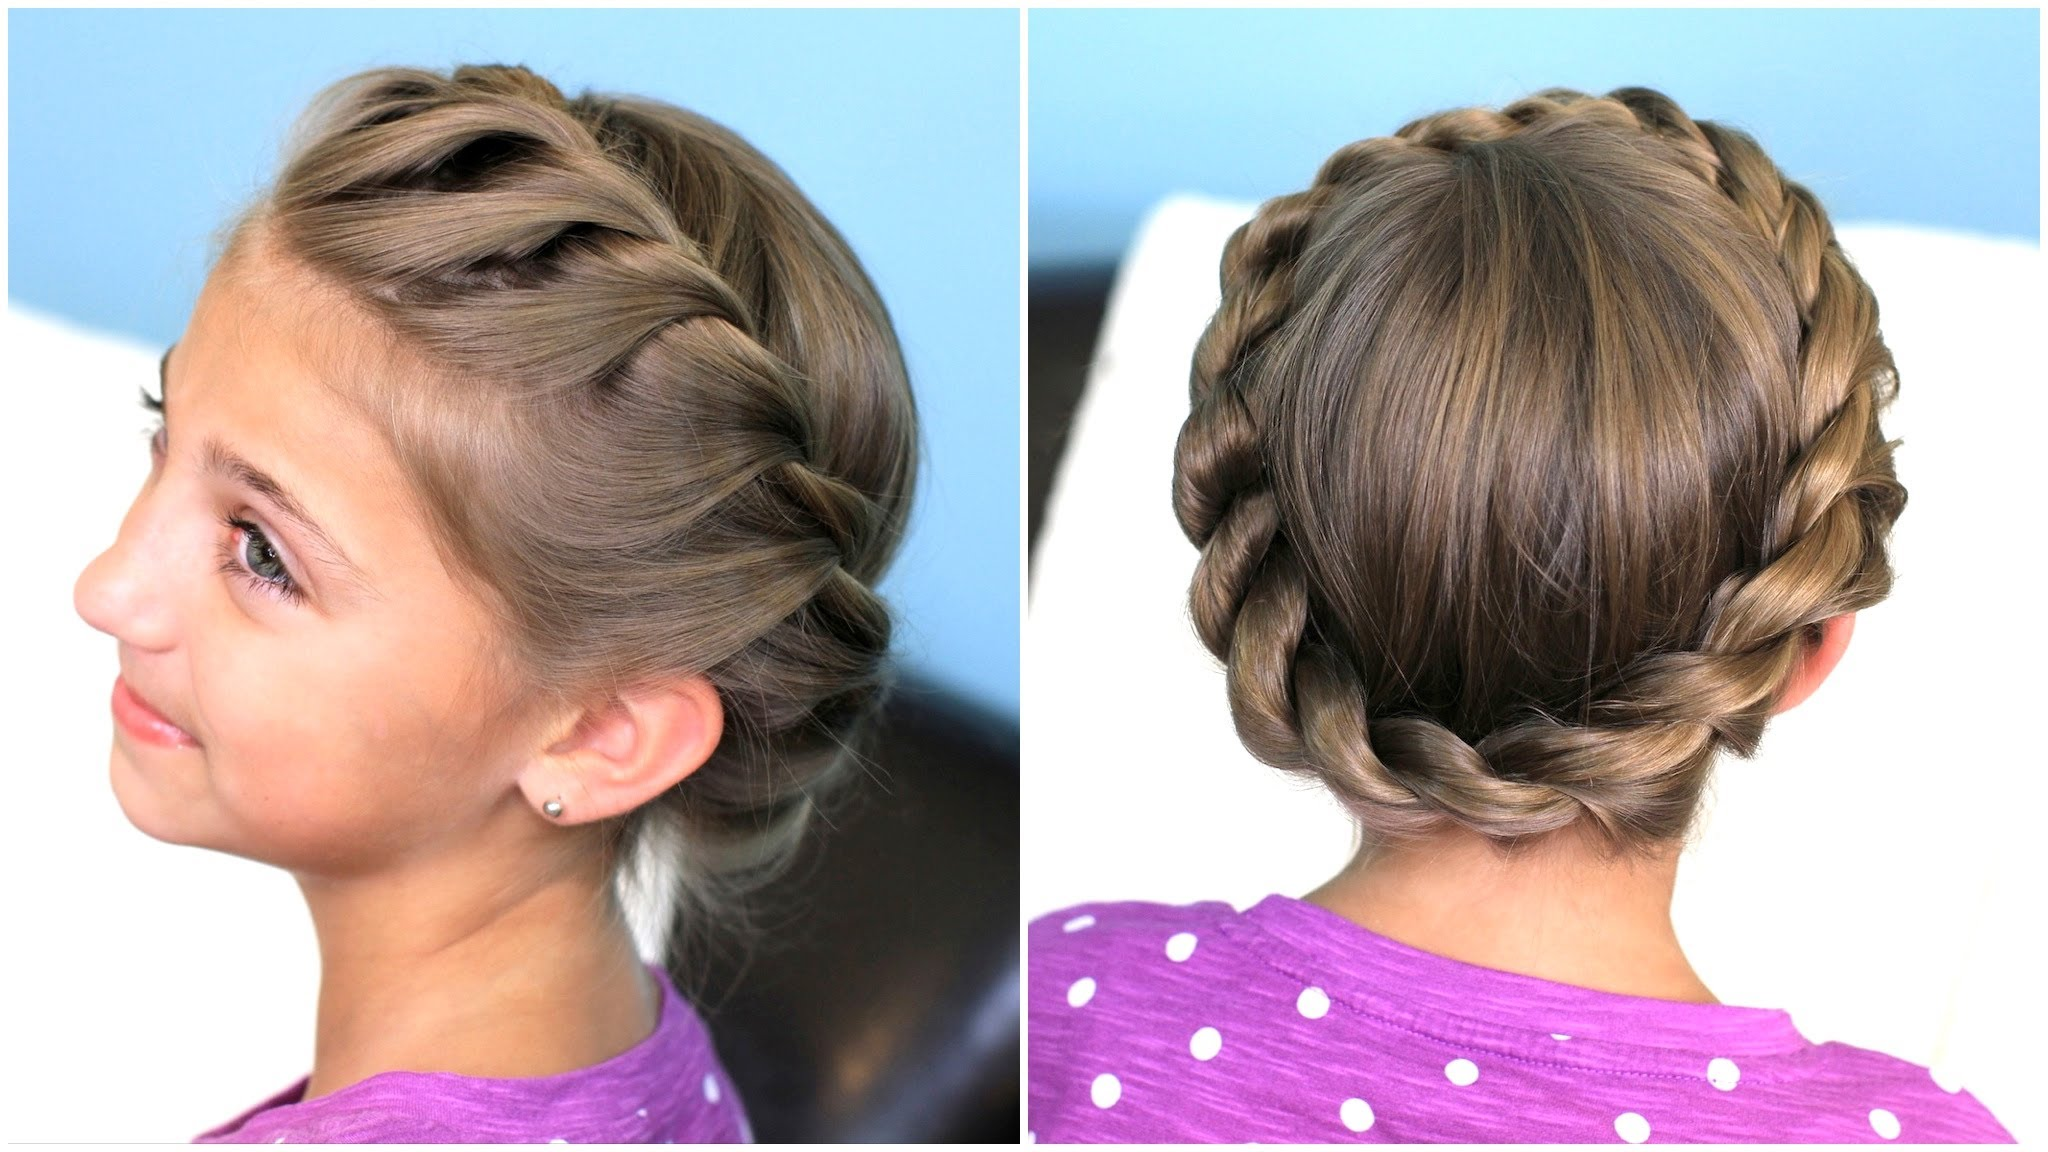 Slight Twist Hairstyle for Women